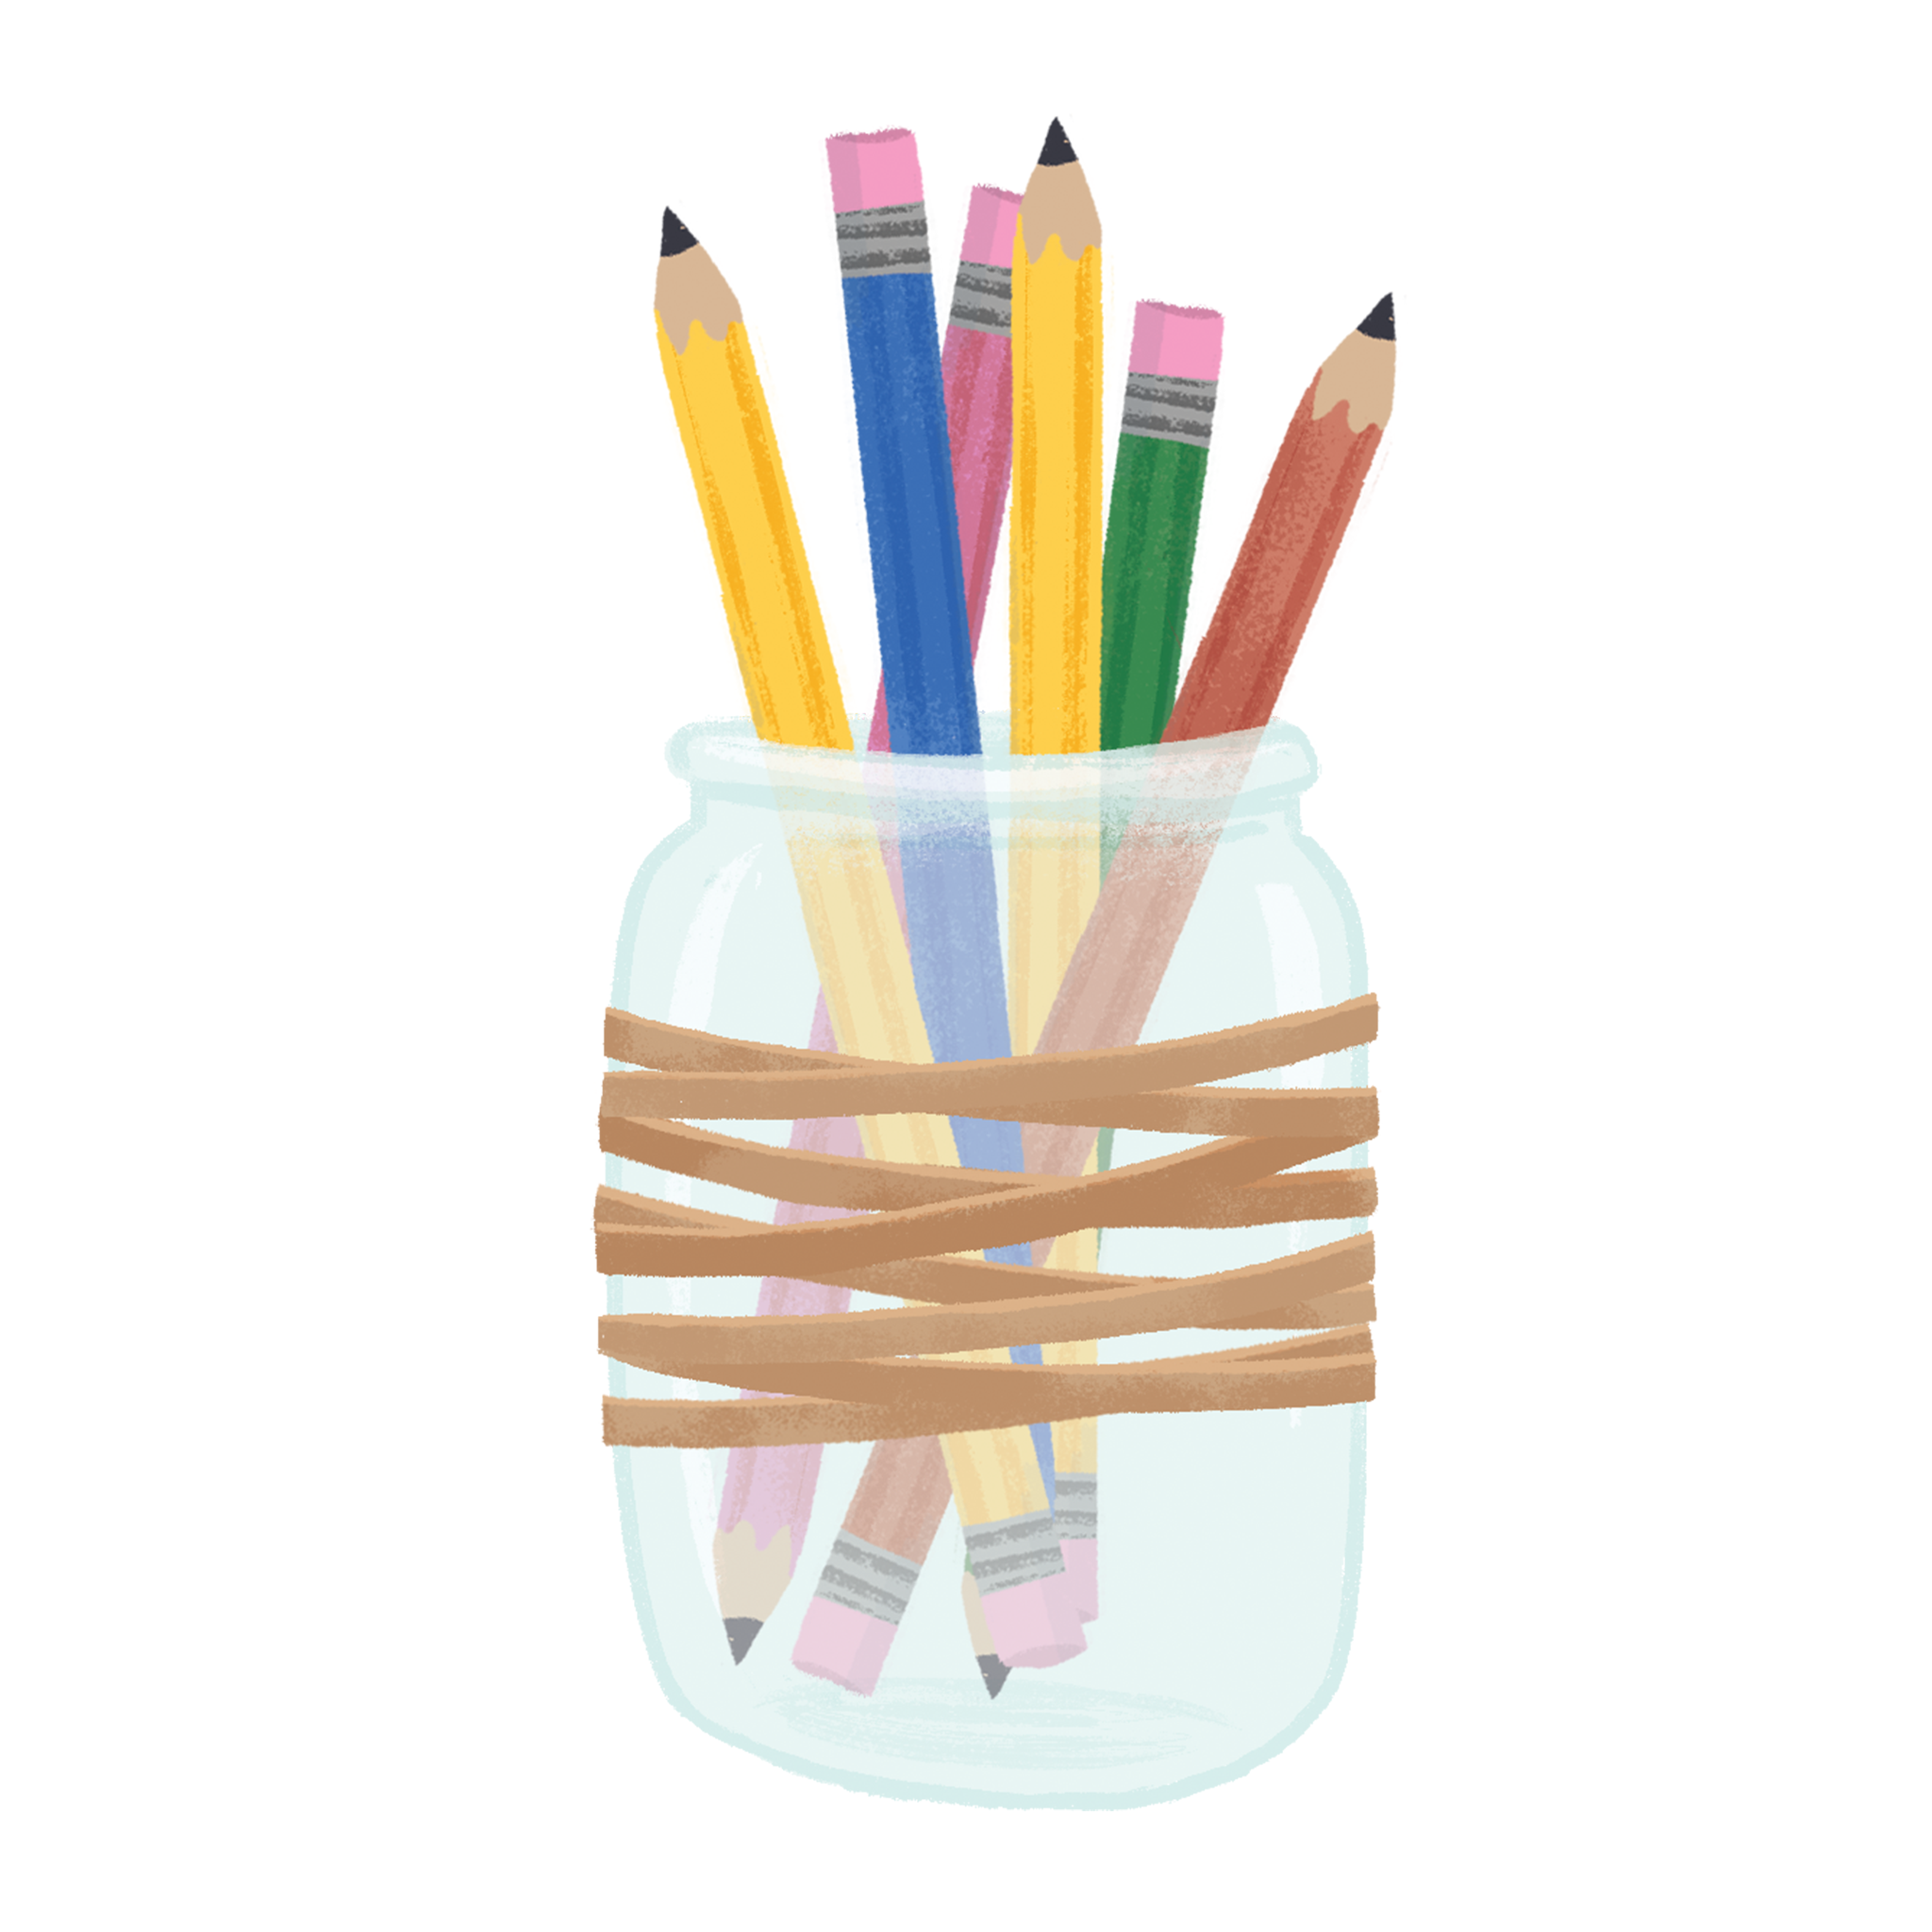 pencil_jar.png